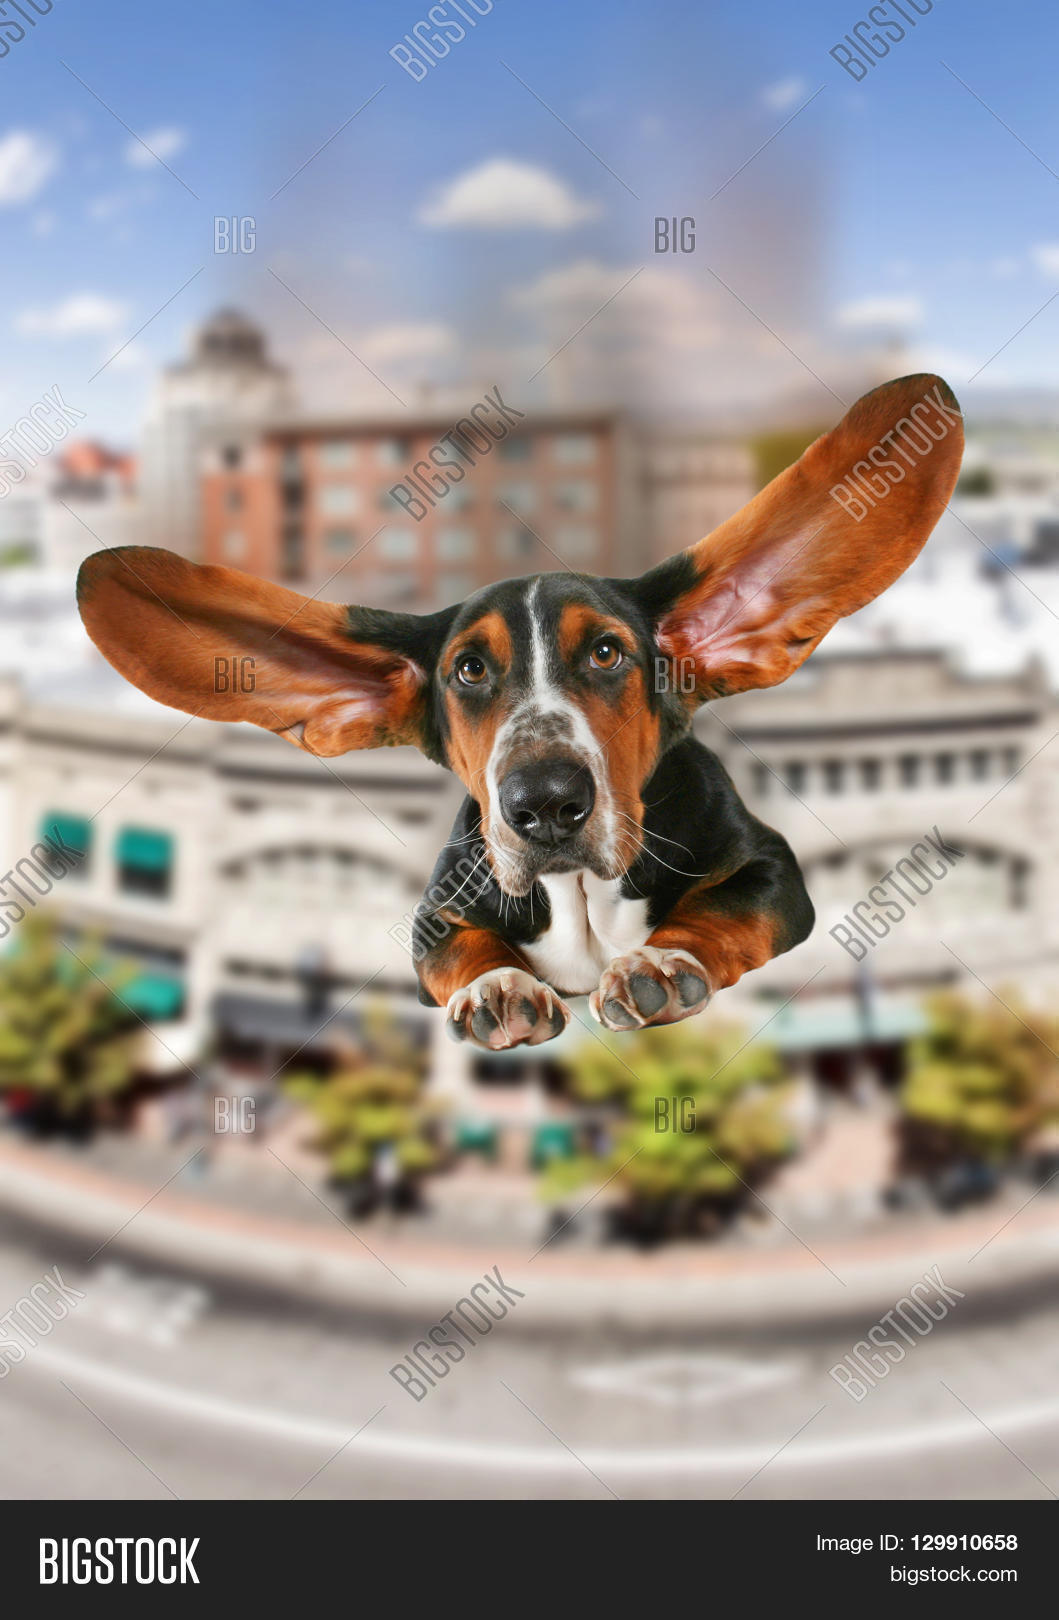 Basset Hound Giant Image & Photo (Free Trial) | Bigstock